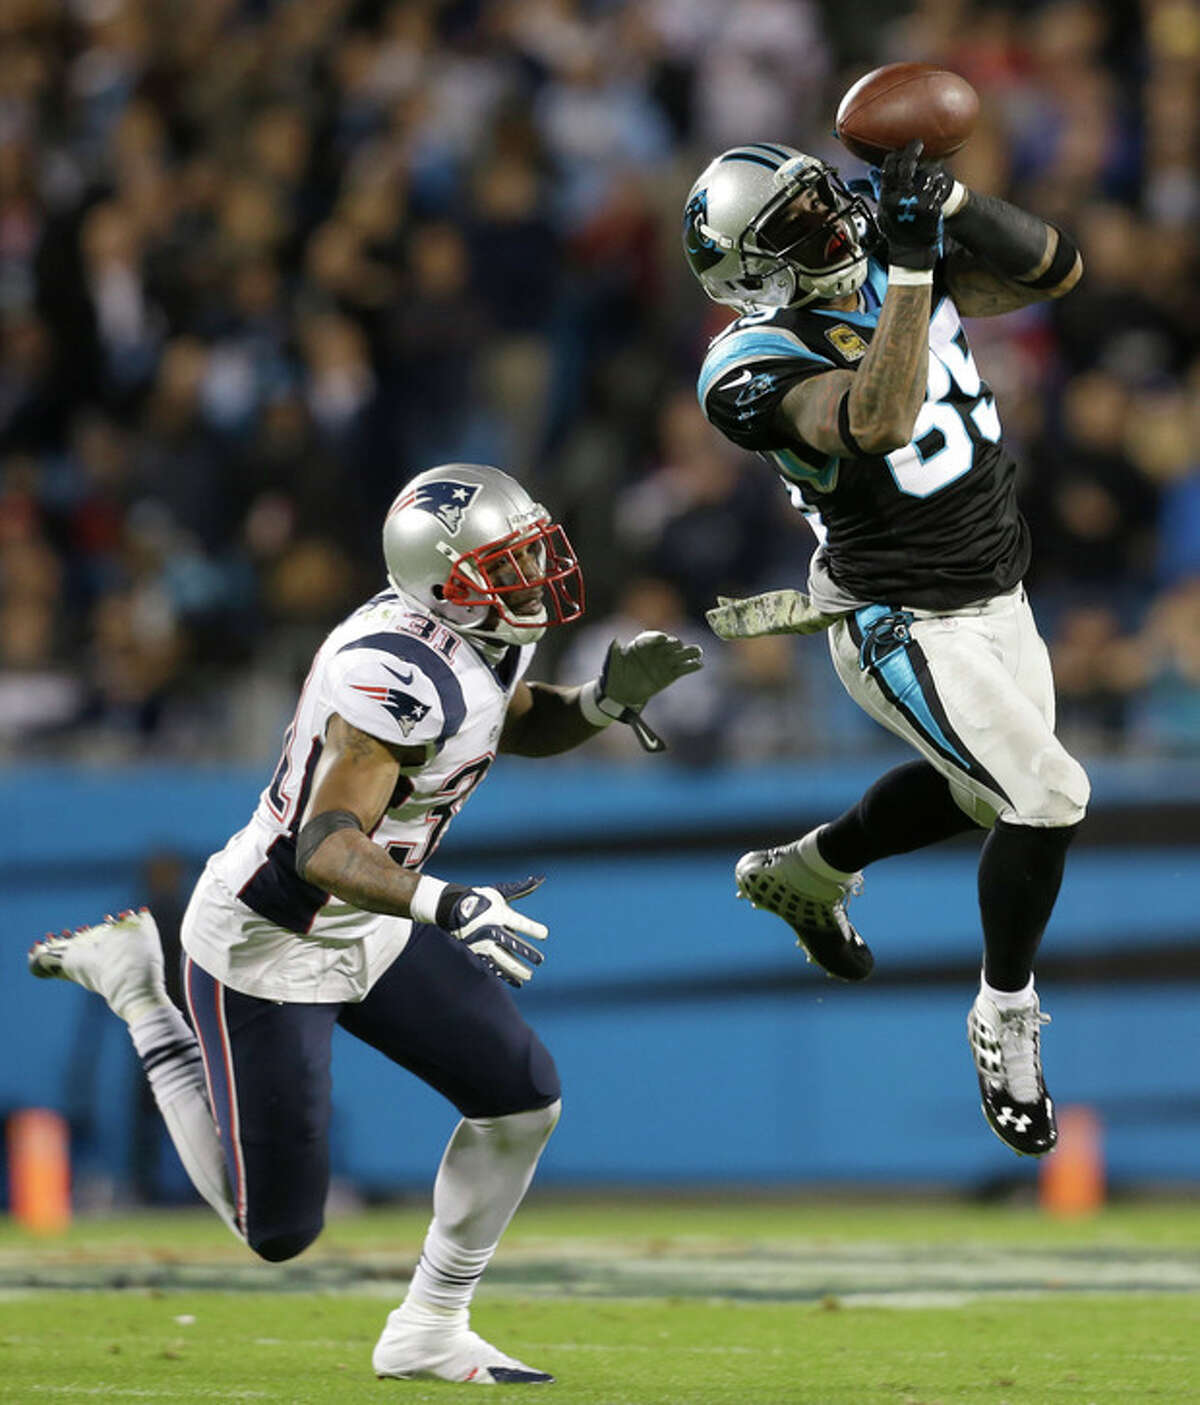 Carolina Panthers' Steve Smith (89) catches a pass as New England Patriots' Aqib Talib (31) defends during the first half of an NFL football game in Charlotte, N.C., Monday, Nov. 18, 2013. (AP Photo/Gerry Broome)